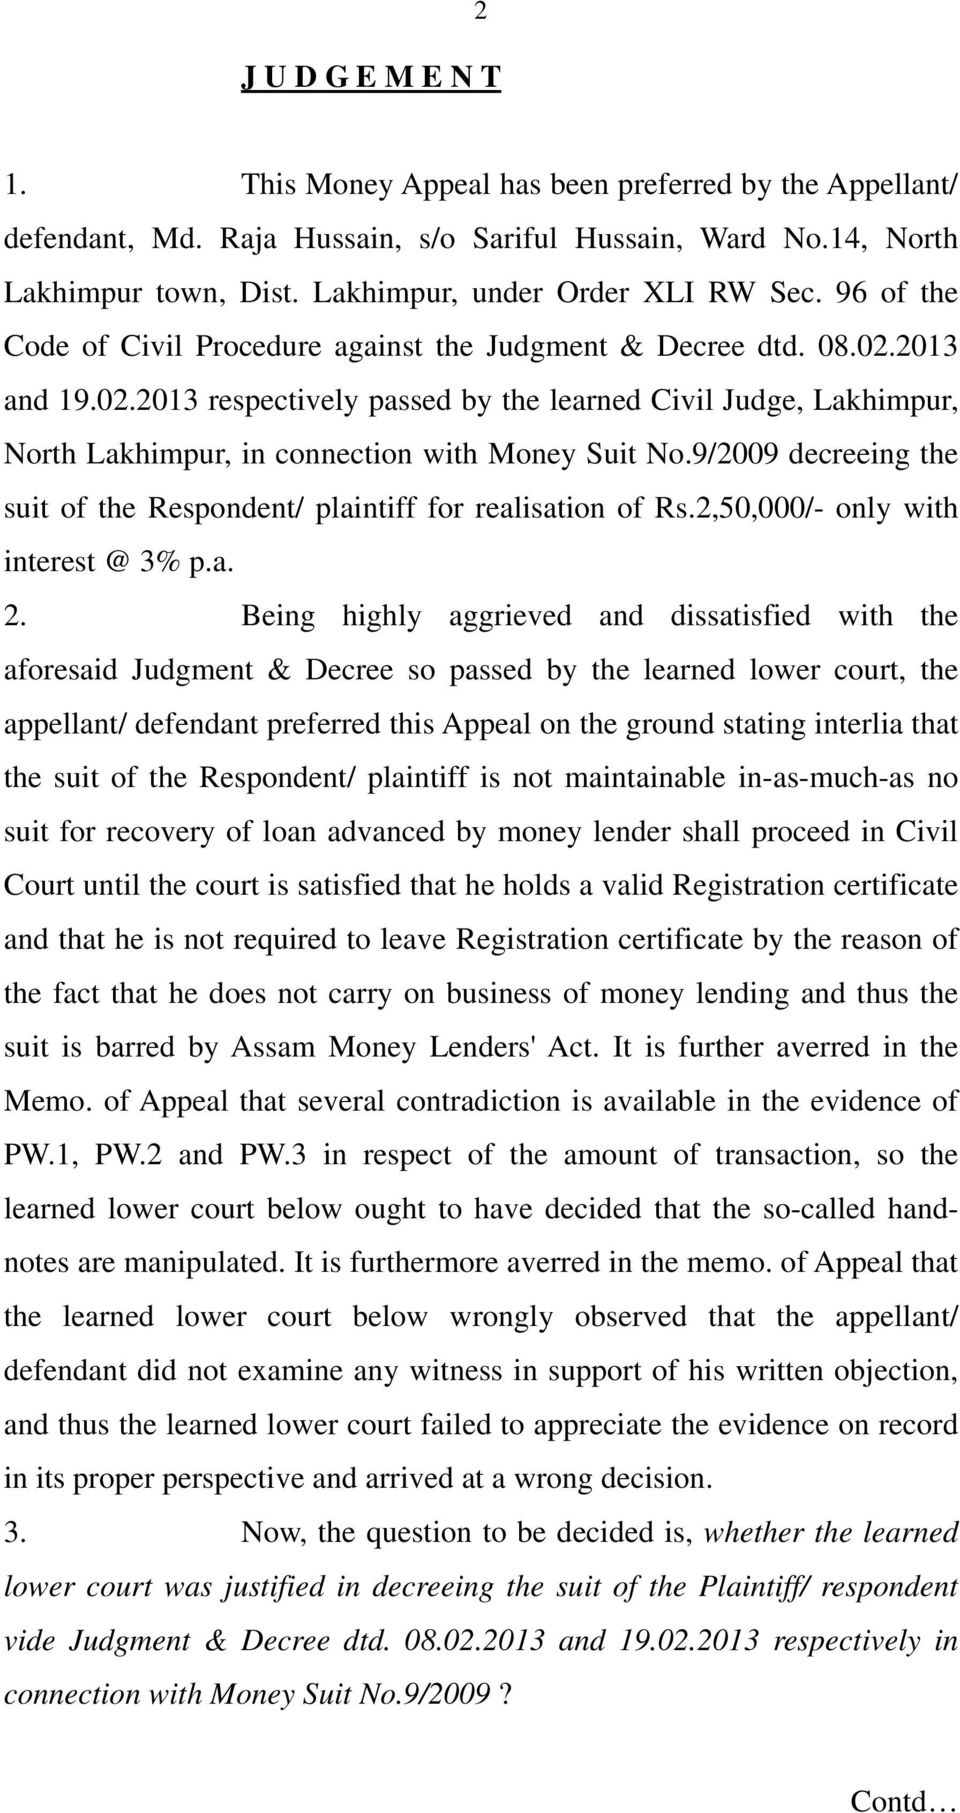 2013 and 19.02.2013 respectively passed by the learned Civil Judge, Lakhimpur, North Lakhimpur, in connection with Money Suit No.